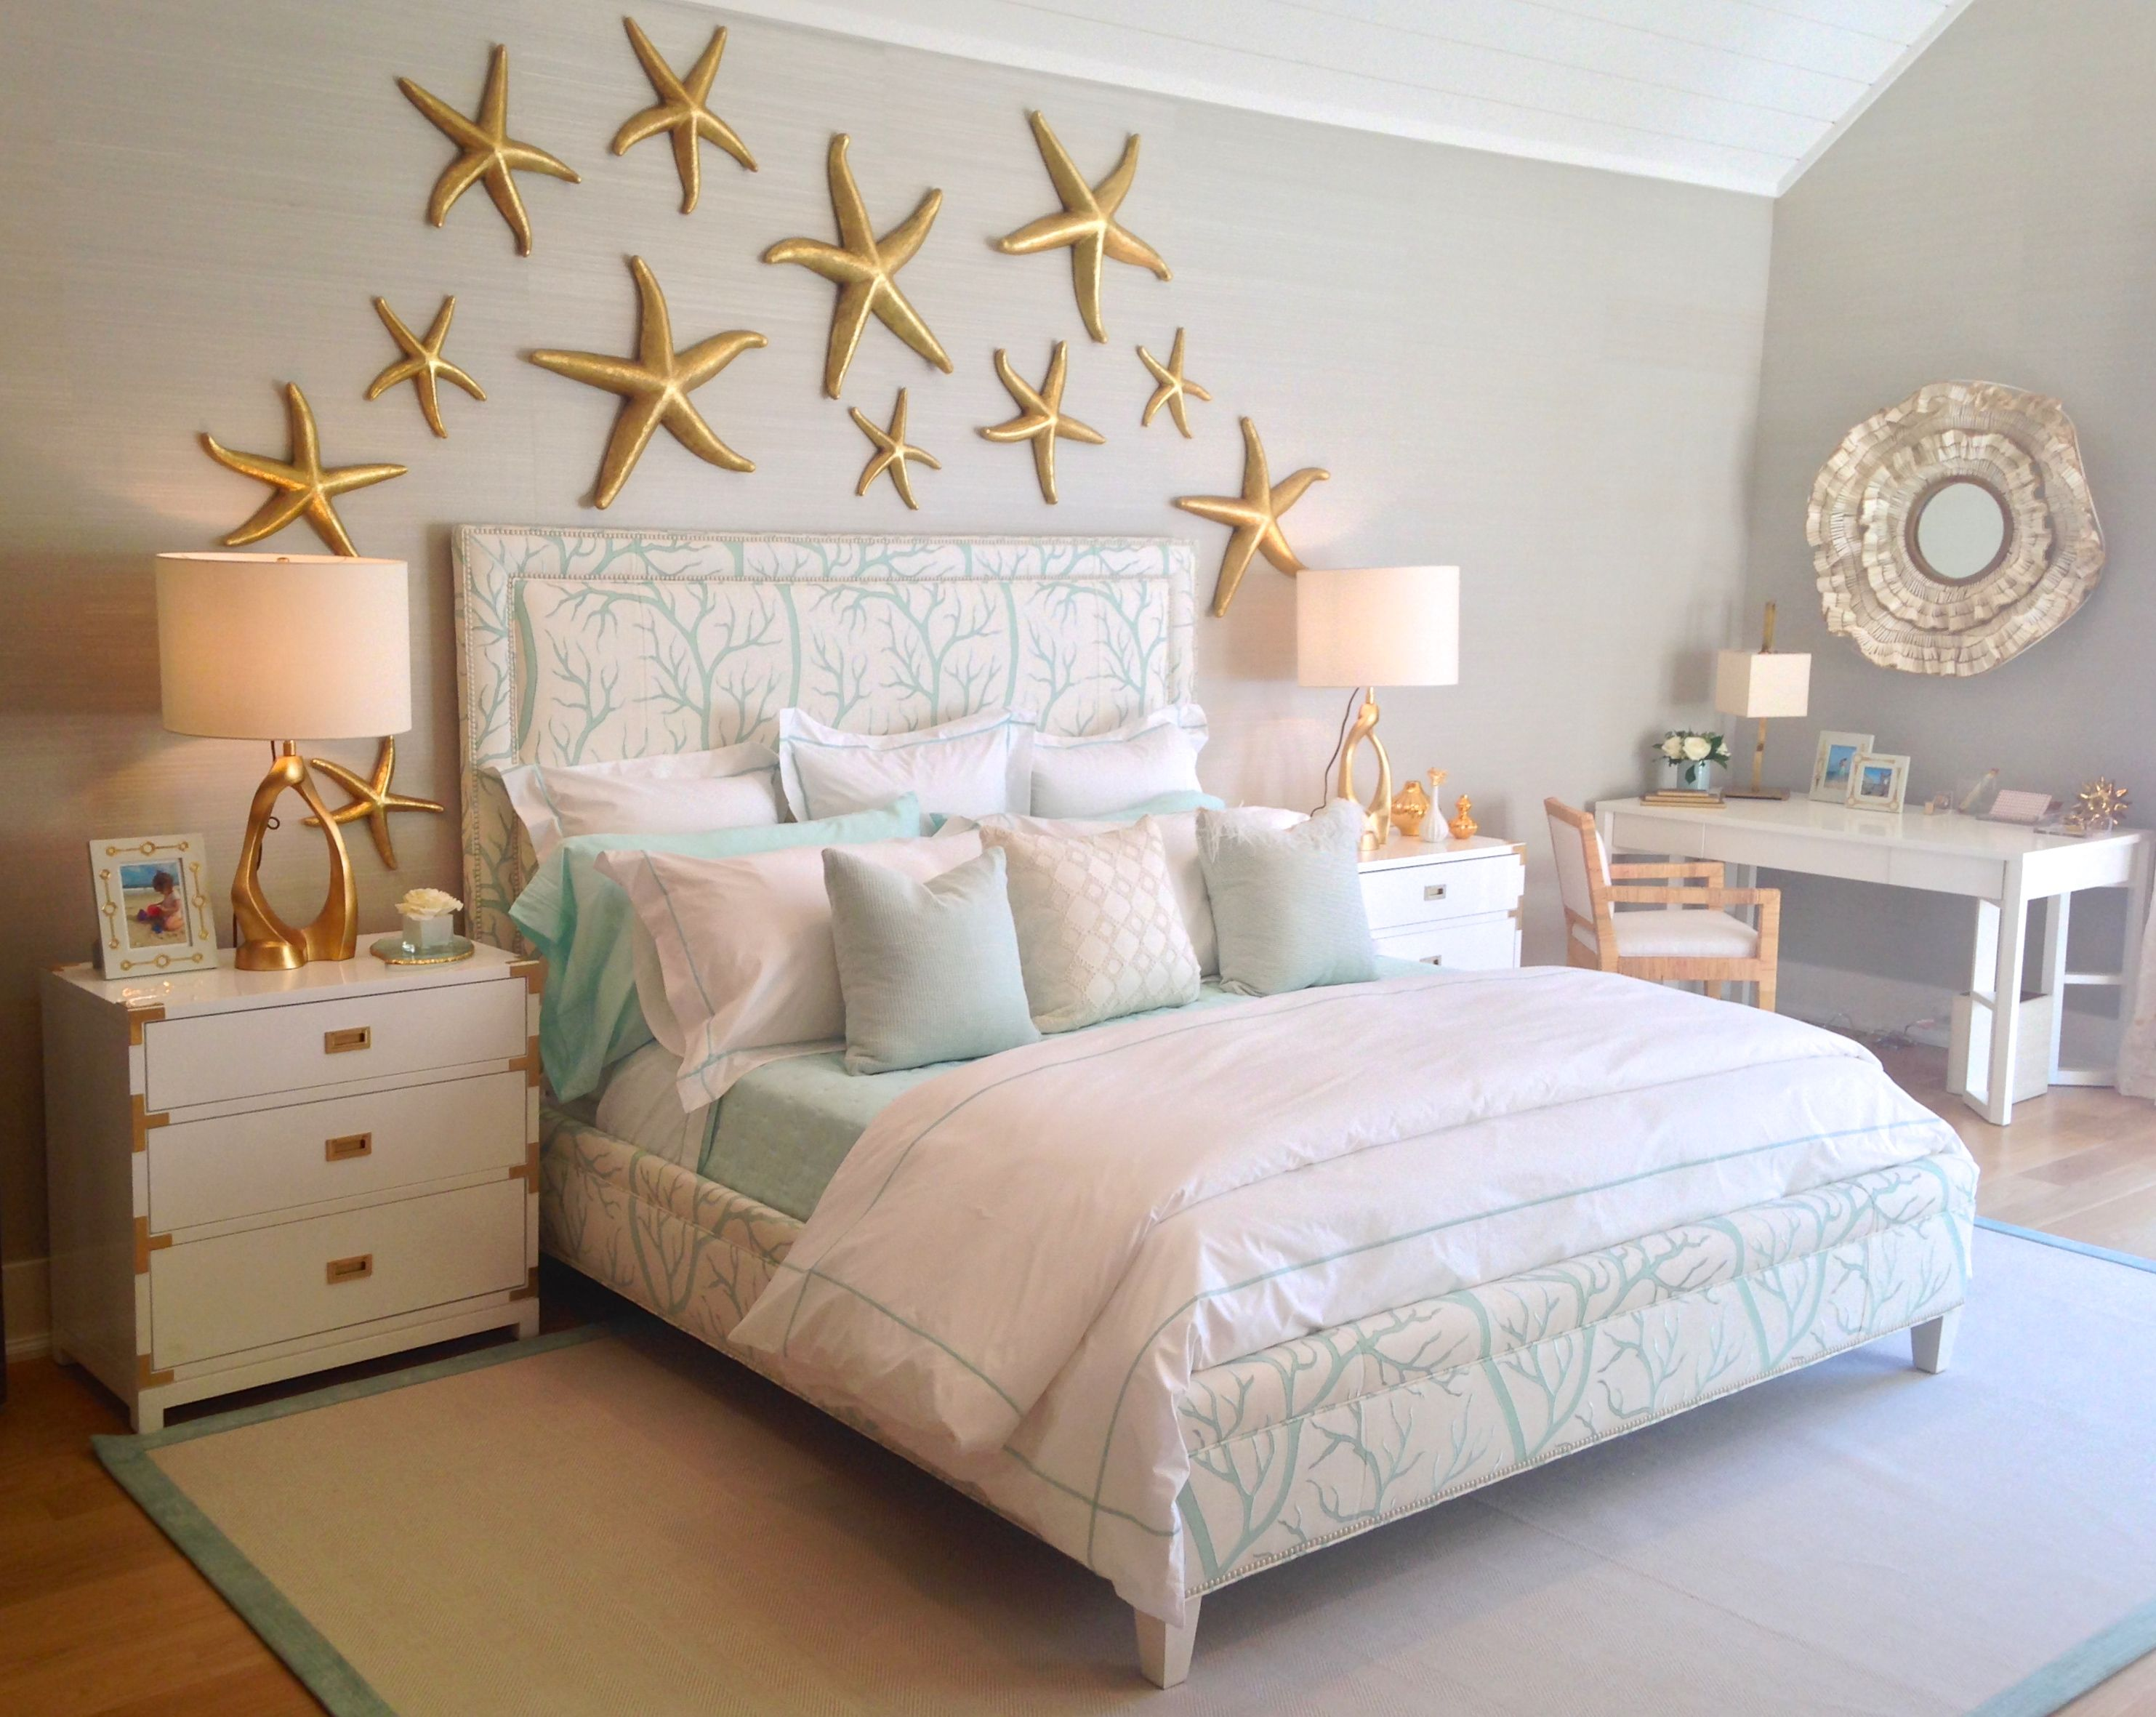 15 Best Images About Turquoise Room Decorations - Slaapkamer ...